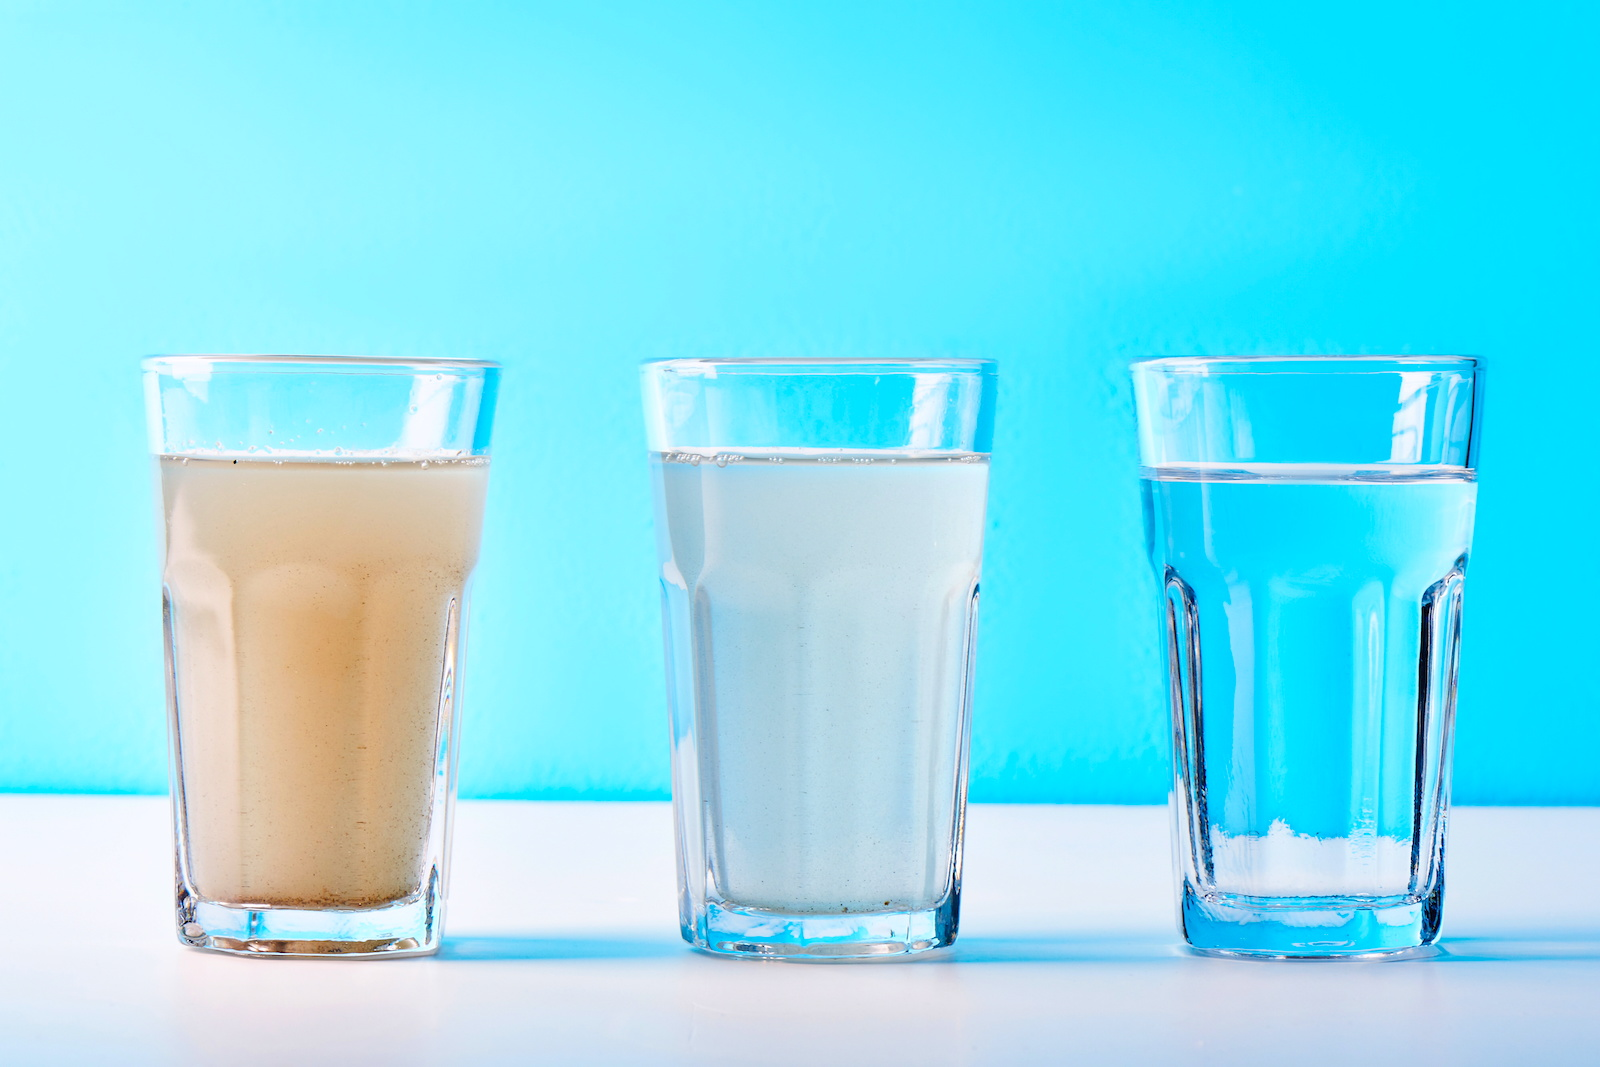 Three glasses of water starting out dirty on the left side and progressively getting cleaner in water quality